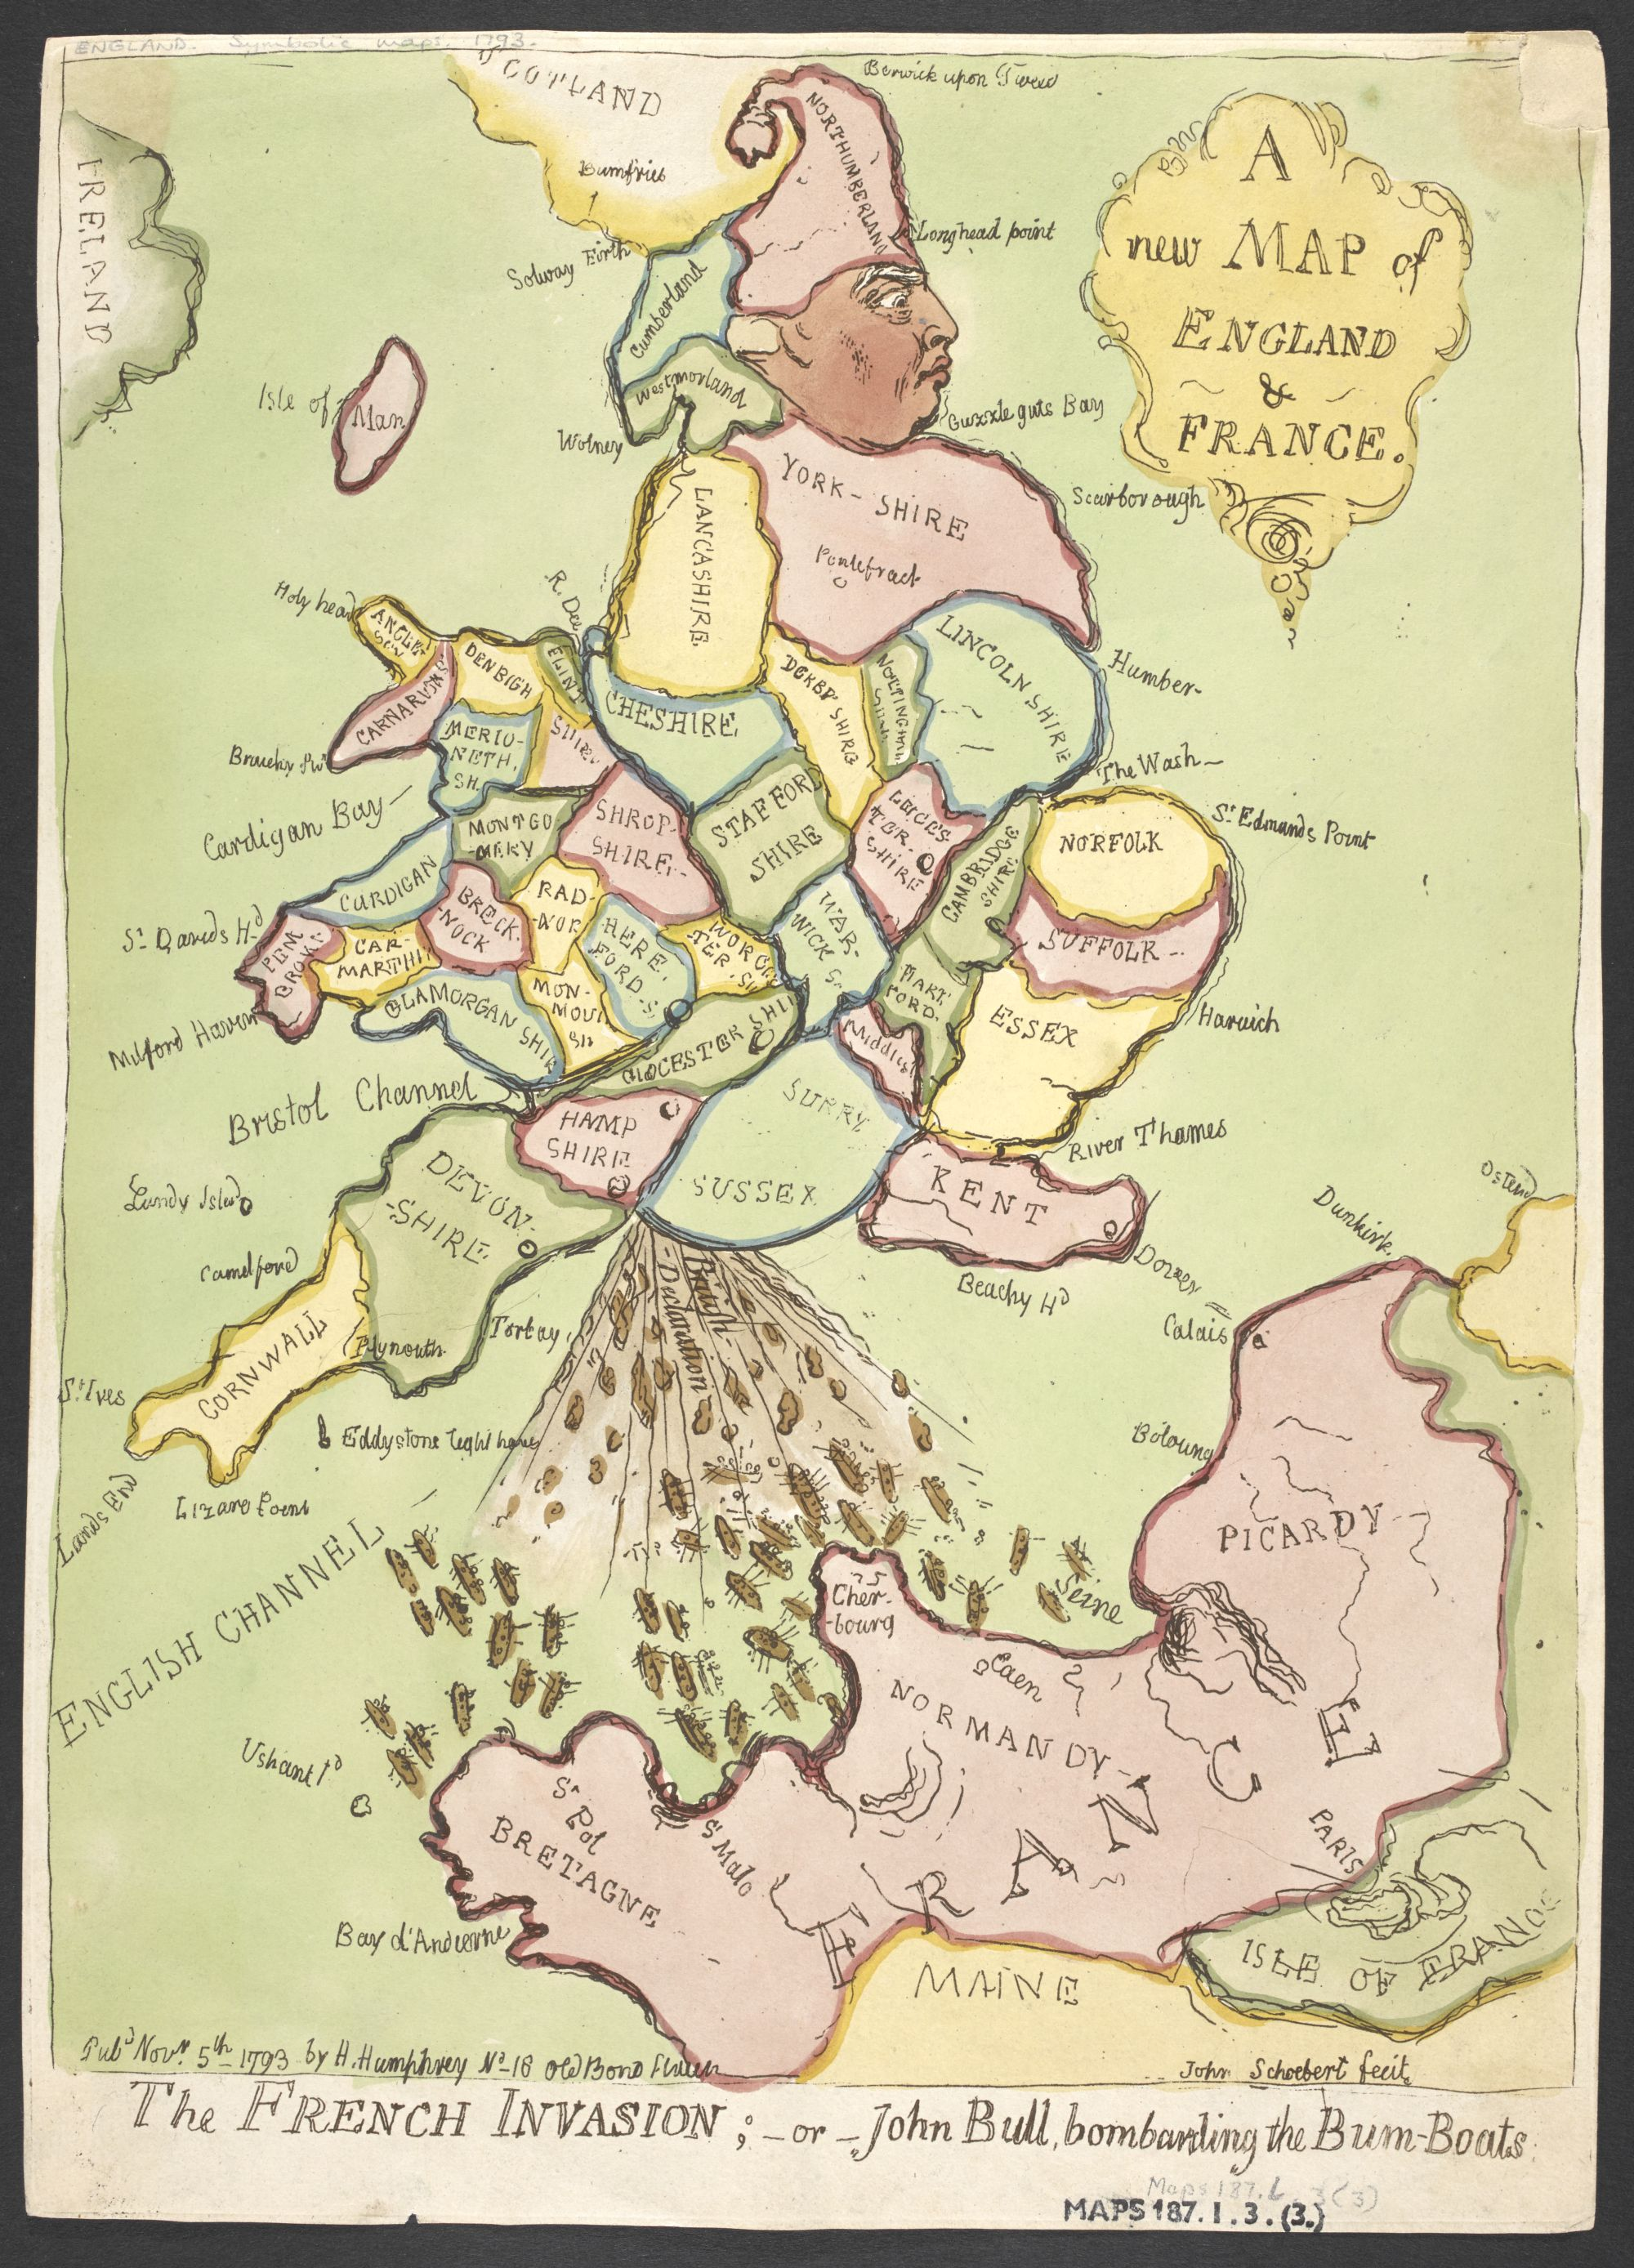 James Gillray (1756–1815), A New Map of England & France. The French Invasion; or John Bull, bombarding the Bum-Boats, published London, Hannah Humphrey (1745–1818), 5 November, 1793, hand-coloured etching, 33 x 24 cm, British Library 187.l.3.(3.)